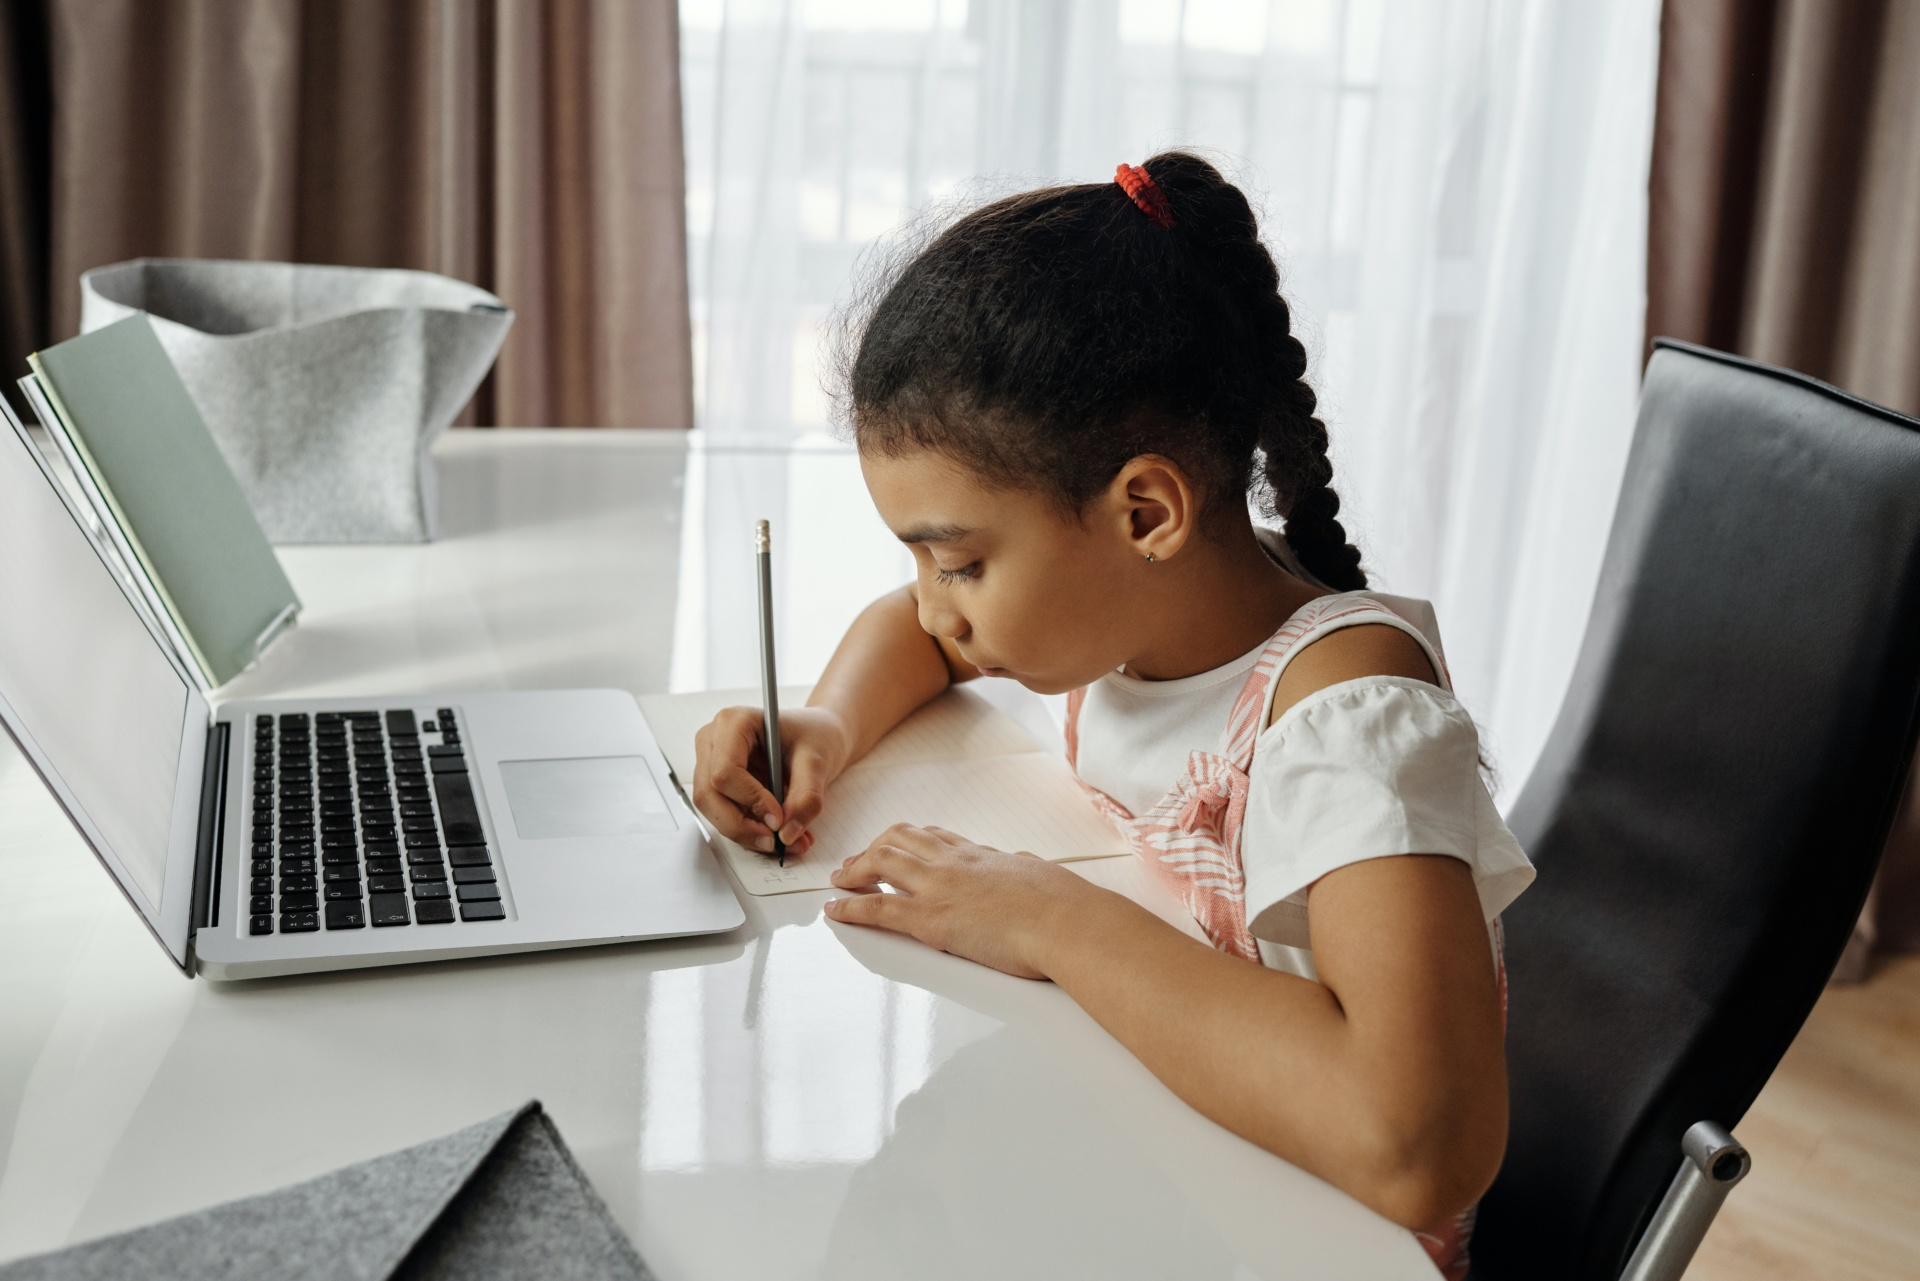 Little girl doing homework in front of laptop